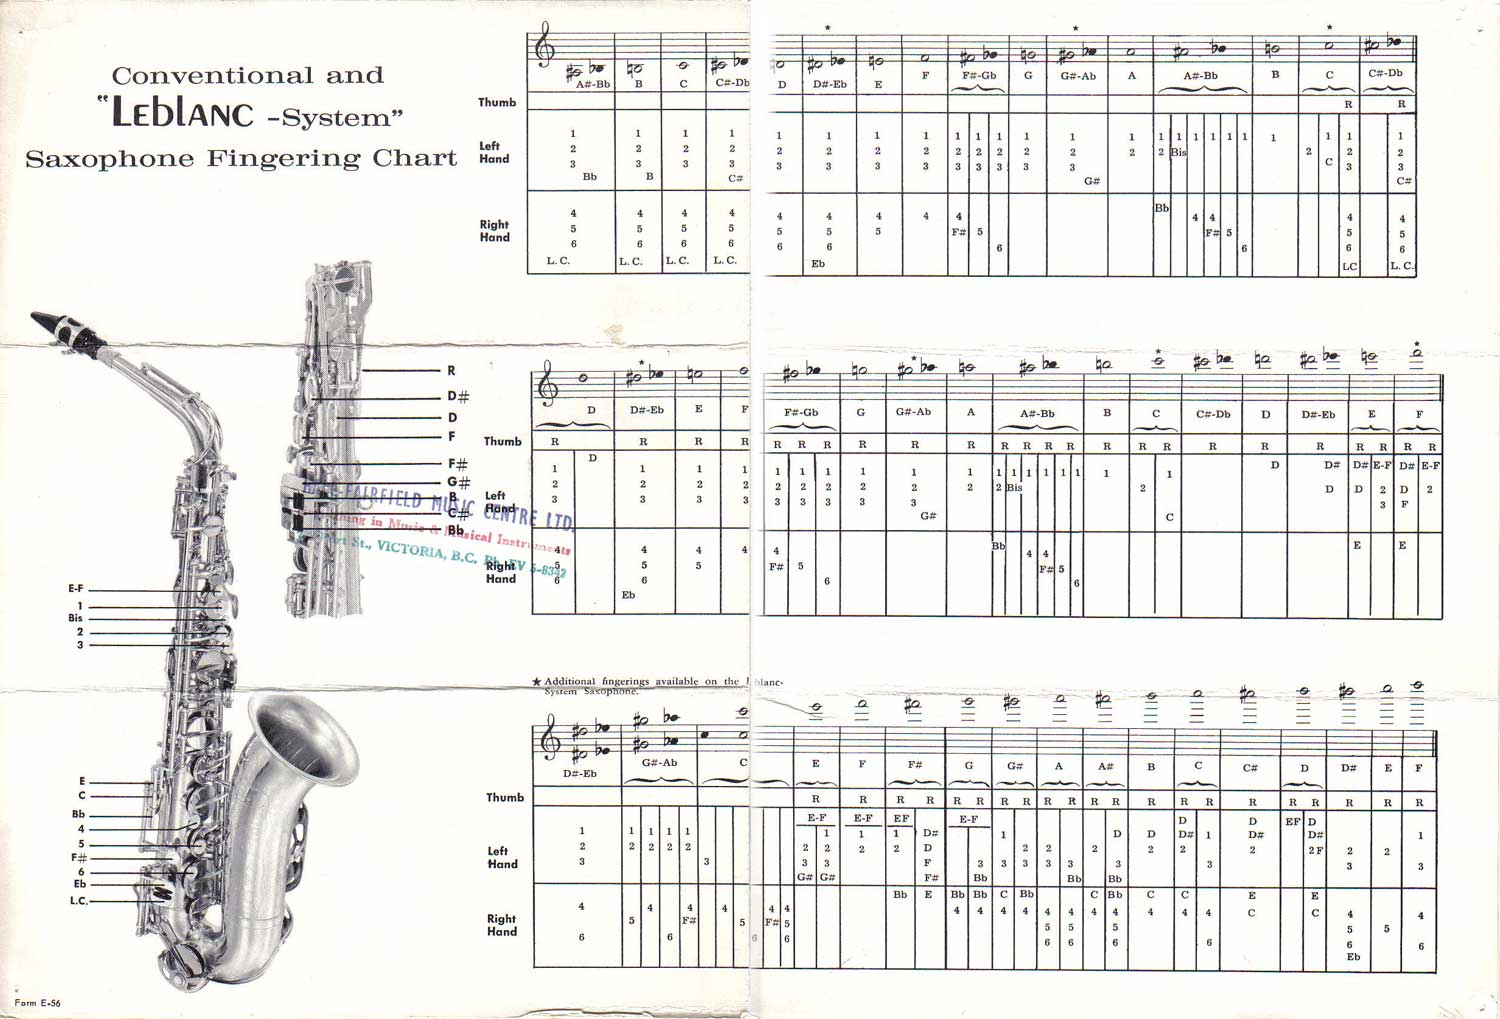 The chart and fingerings are